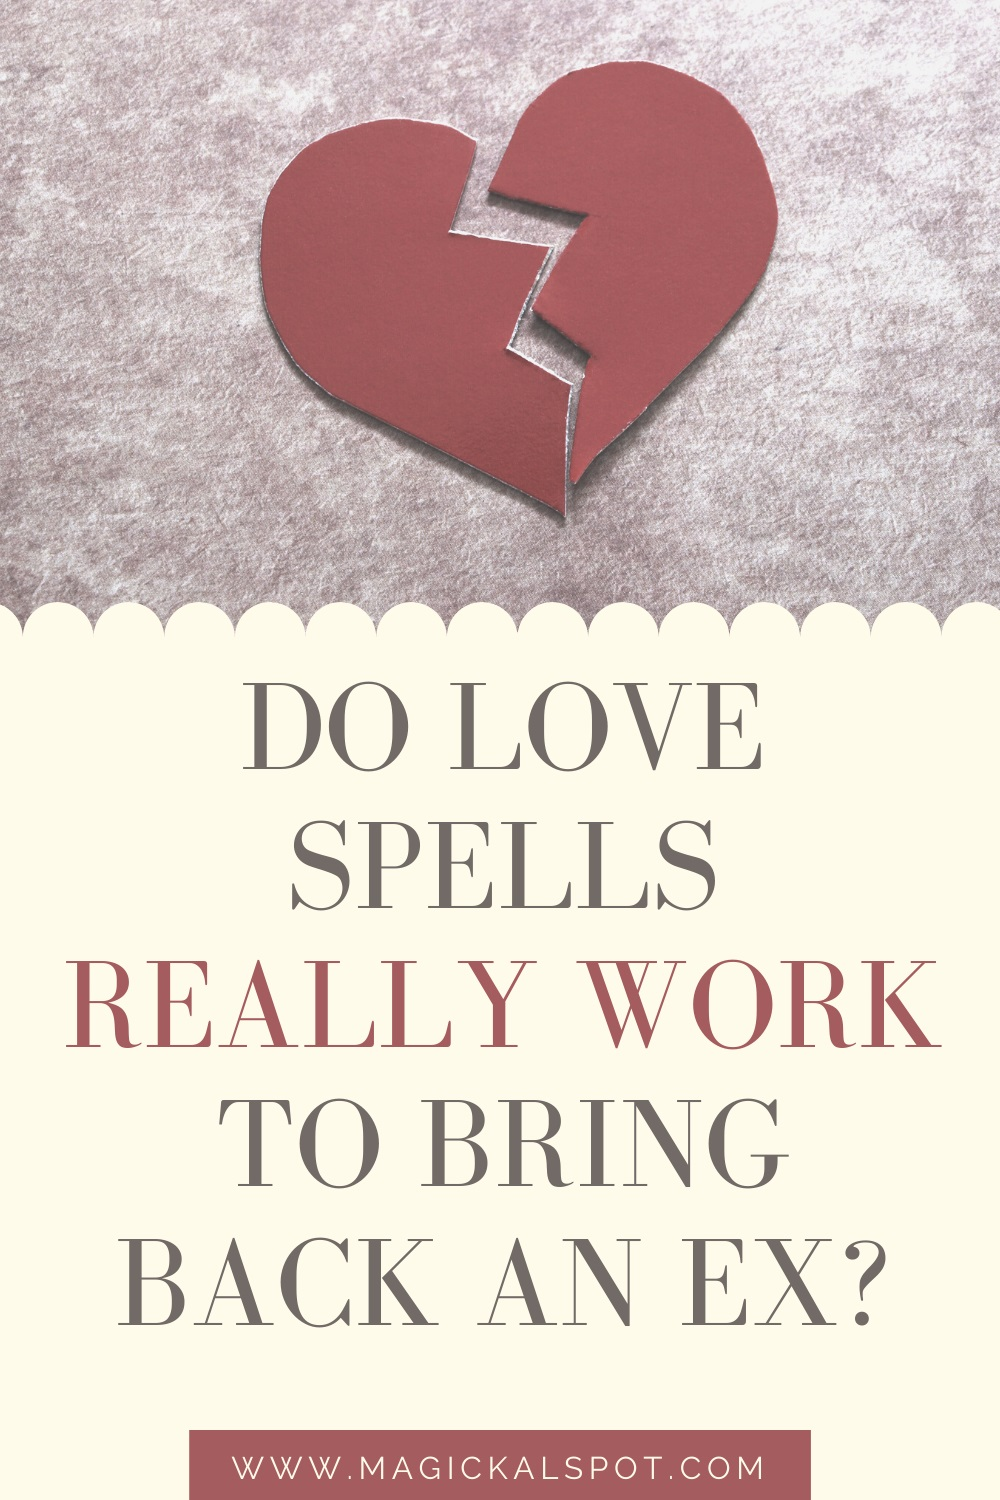 Do Love Spells Really Work to Get an Ex Back by MagickalSpot 6